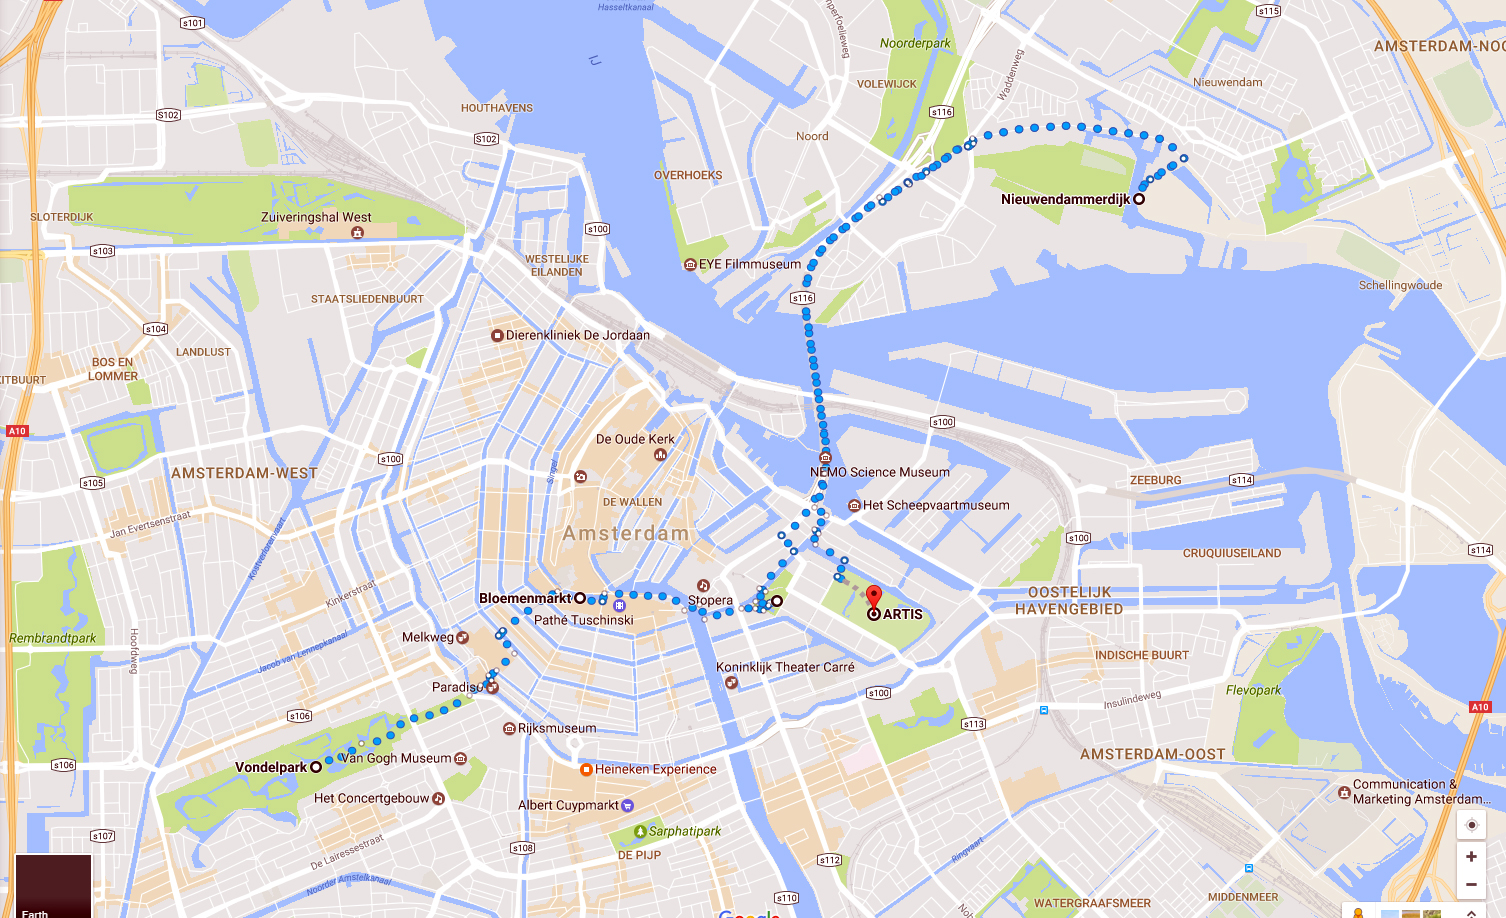 City Walk in 36000 Steps Amsterdam Sneaker Sightseeing fitness